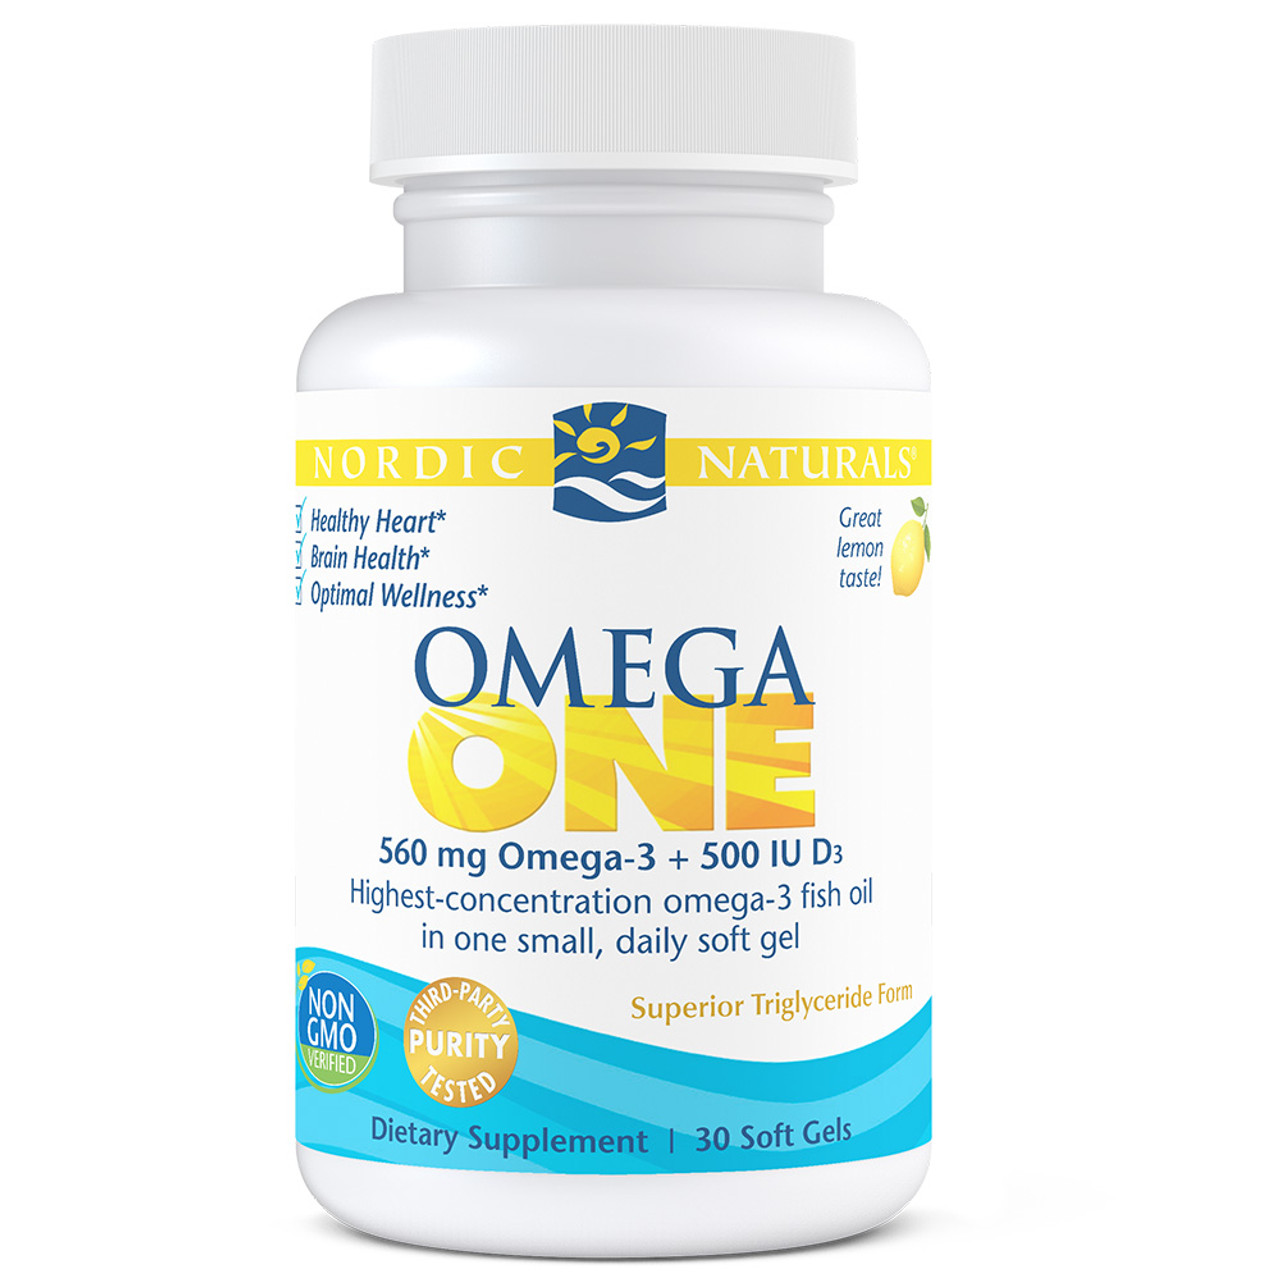 Omega One Lemon